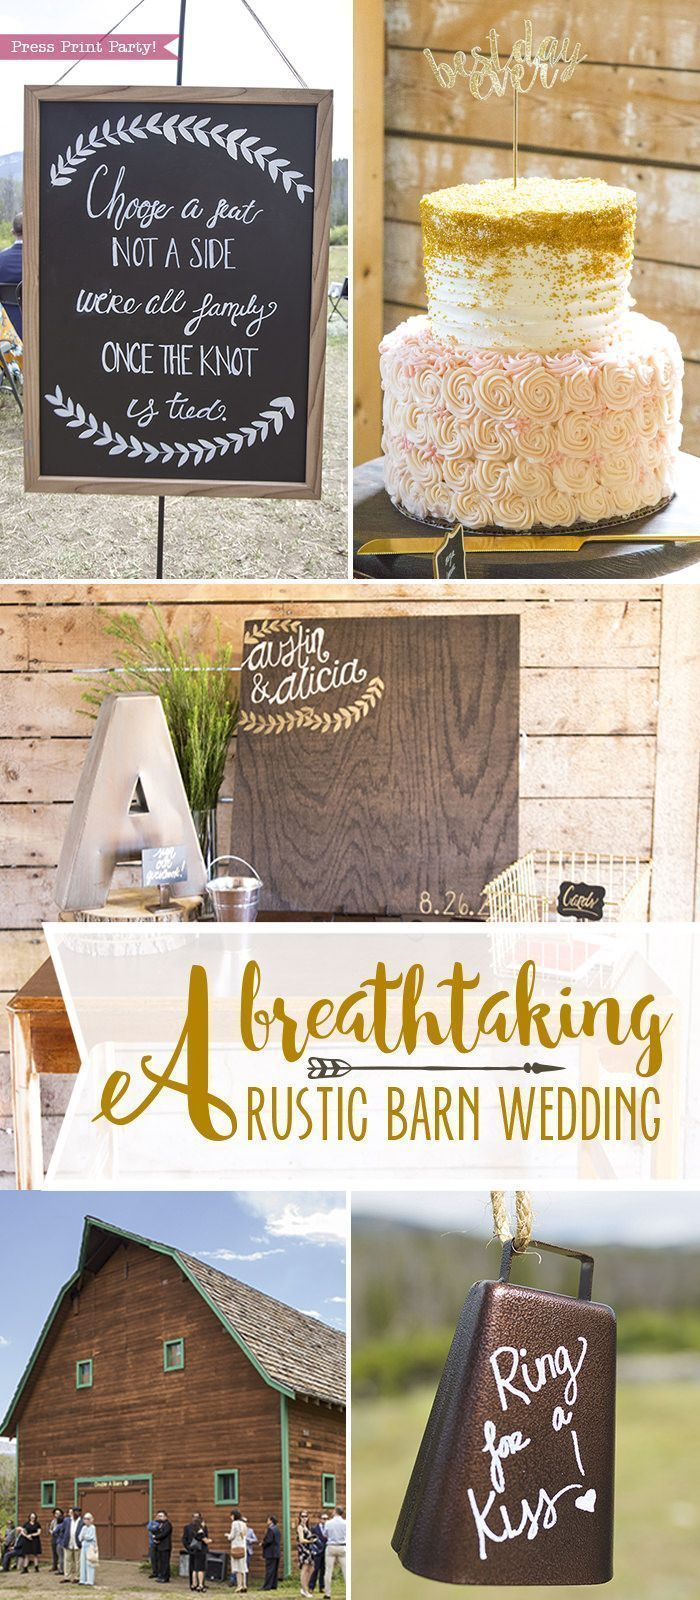 Country wedding decoration ideas  A breathtaking rustic barn wedding  country wedding  Press Print